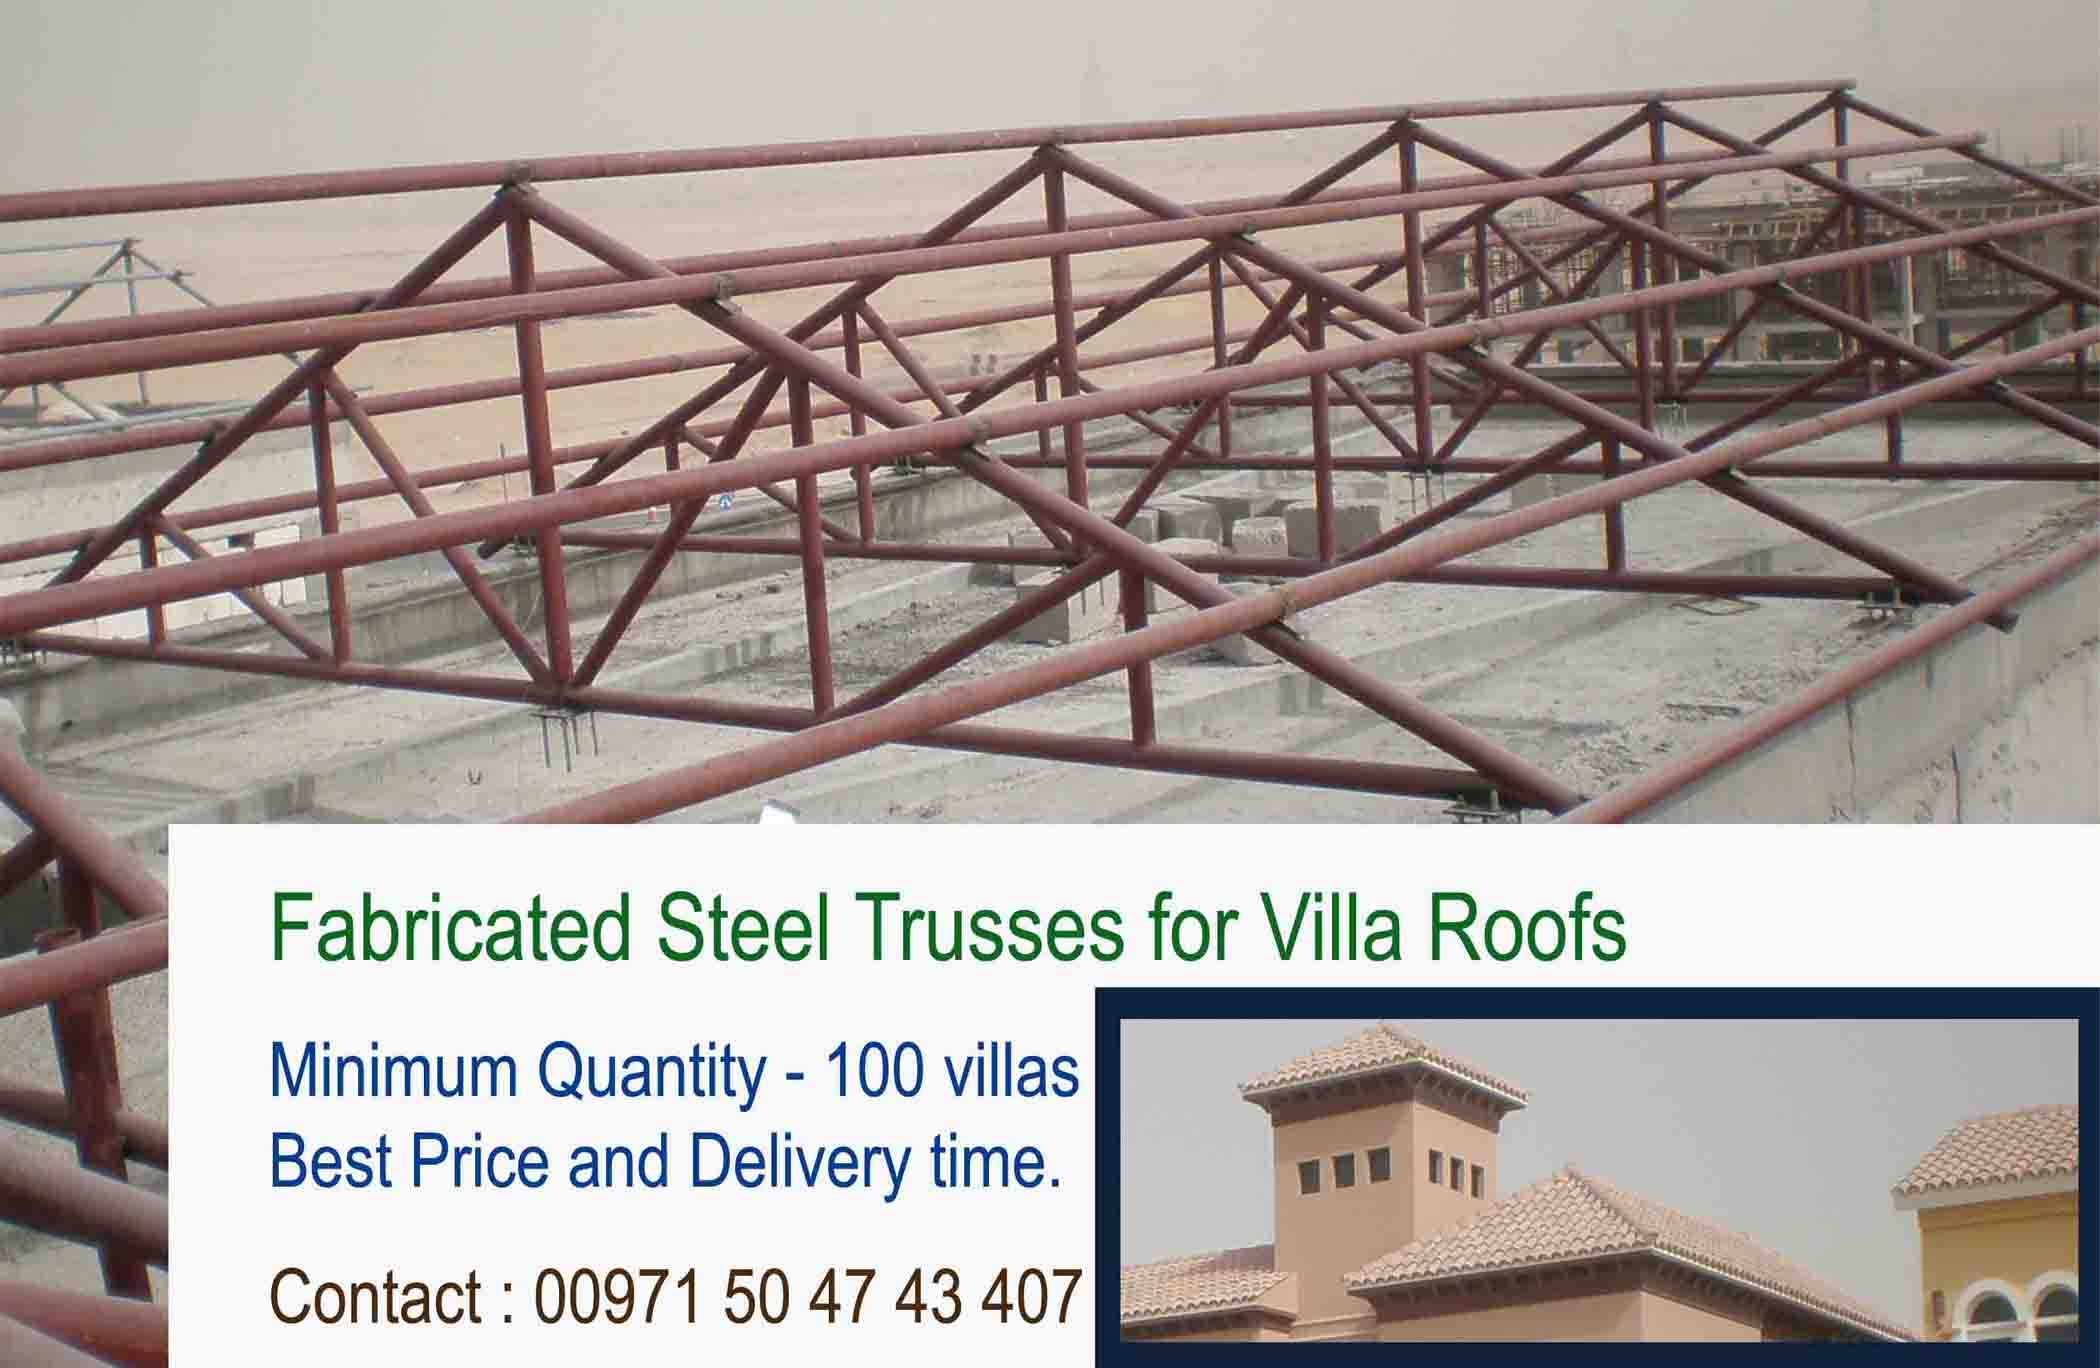 Steel Trusses For Villa Roofs At Dubai   Buy Steel Trusses Product On  Alibaba.com